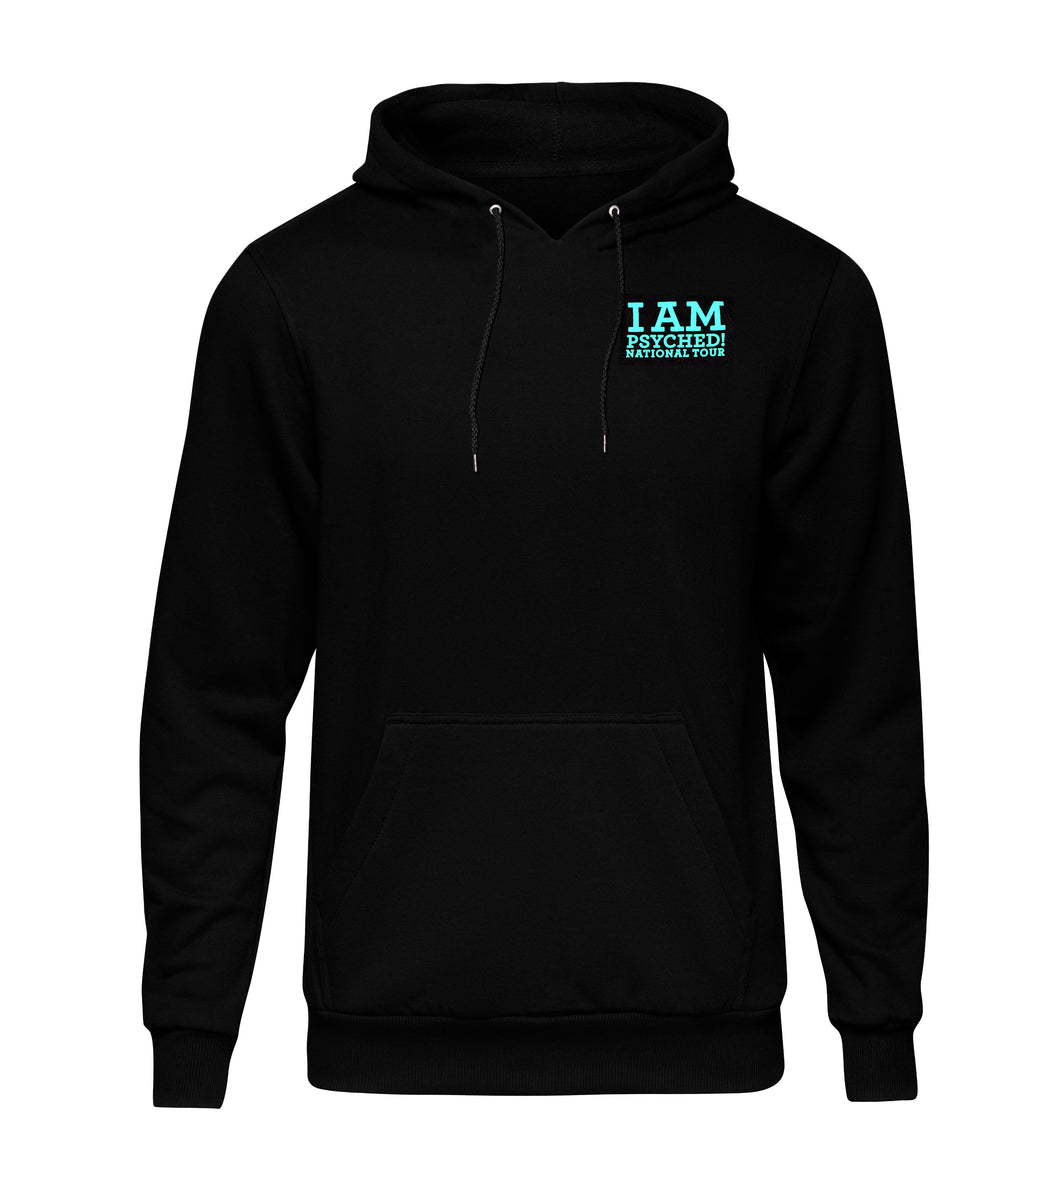 I Am Psyched Hoodie